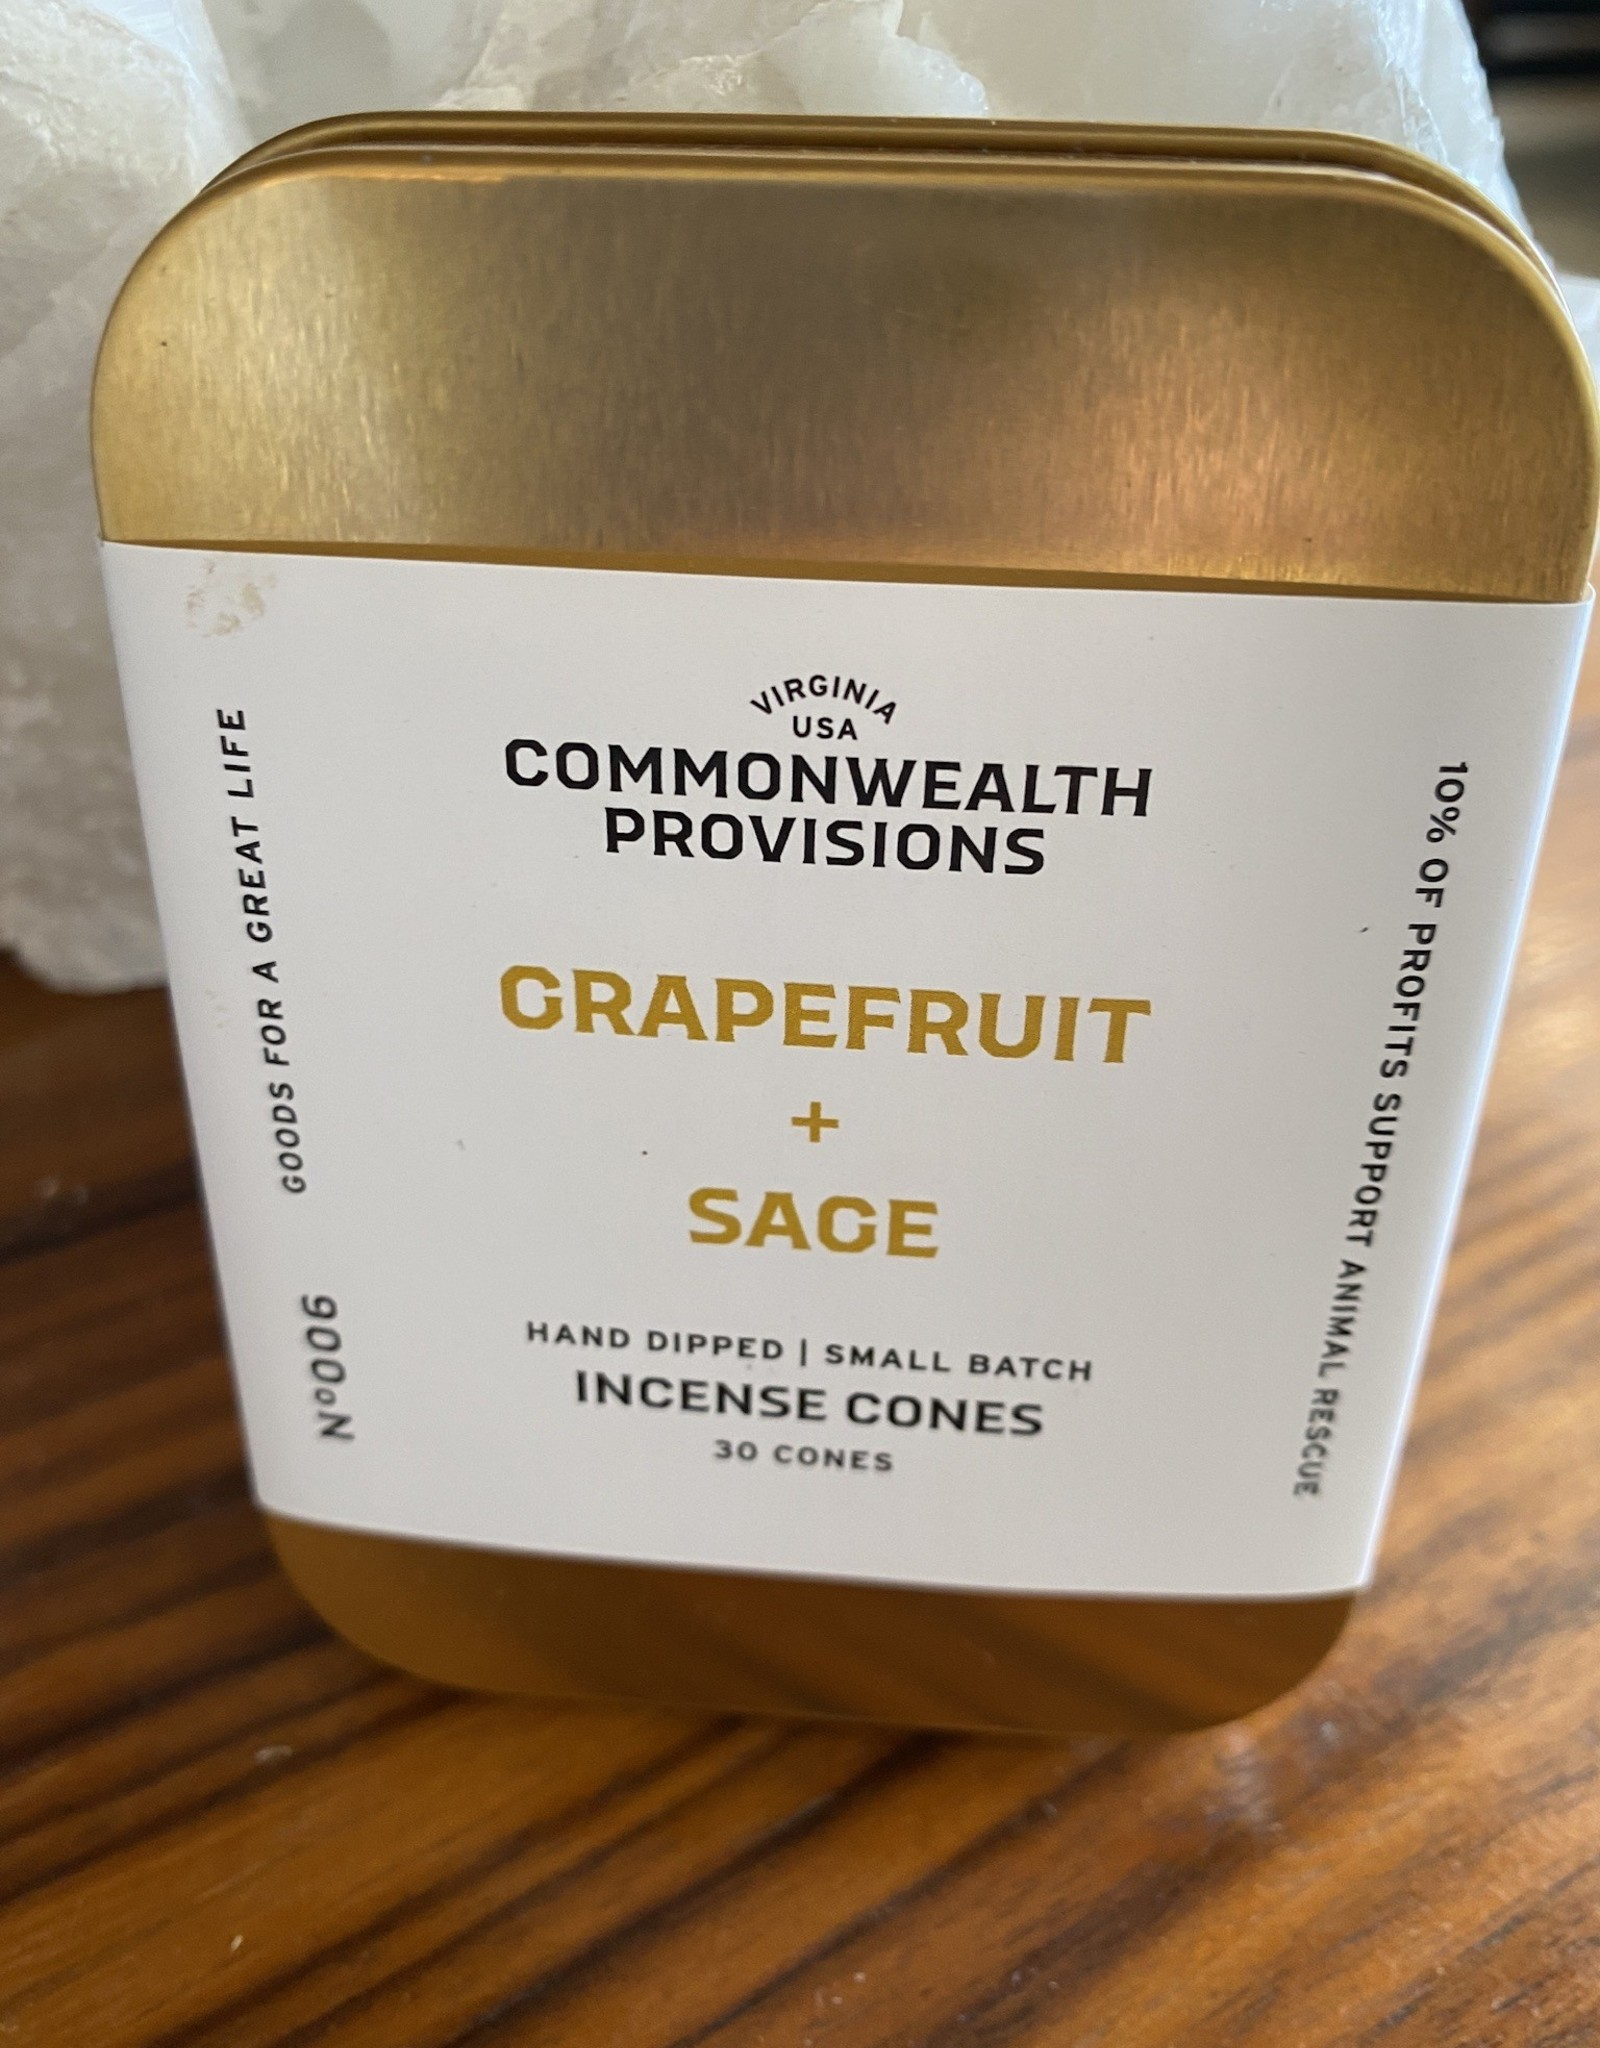 Commonwealth Provisions CP Hand Dipped Incense Cones in Tin